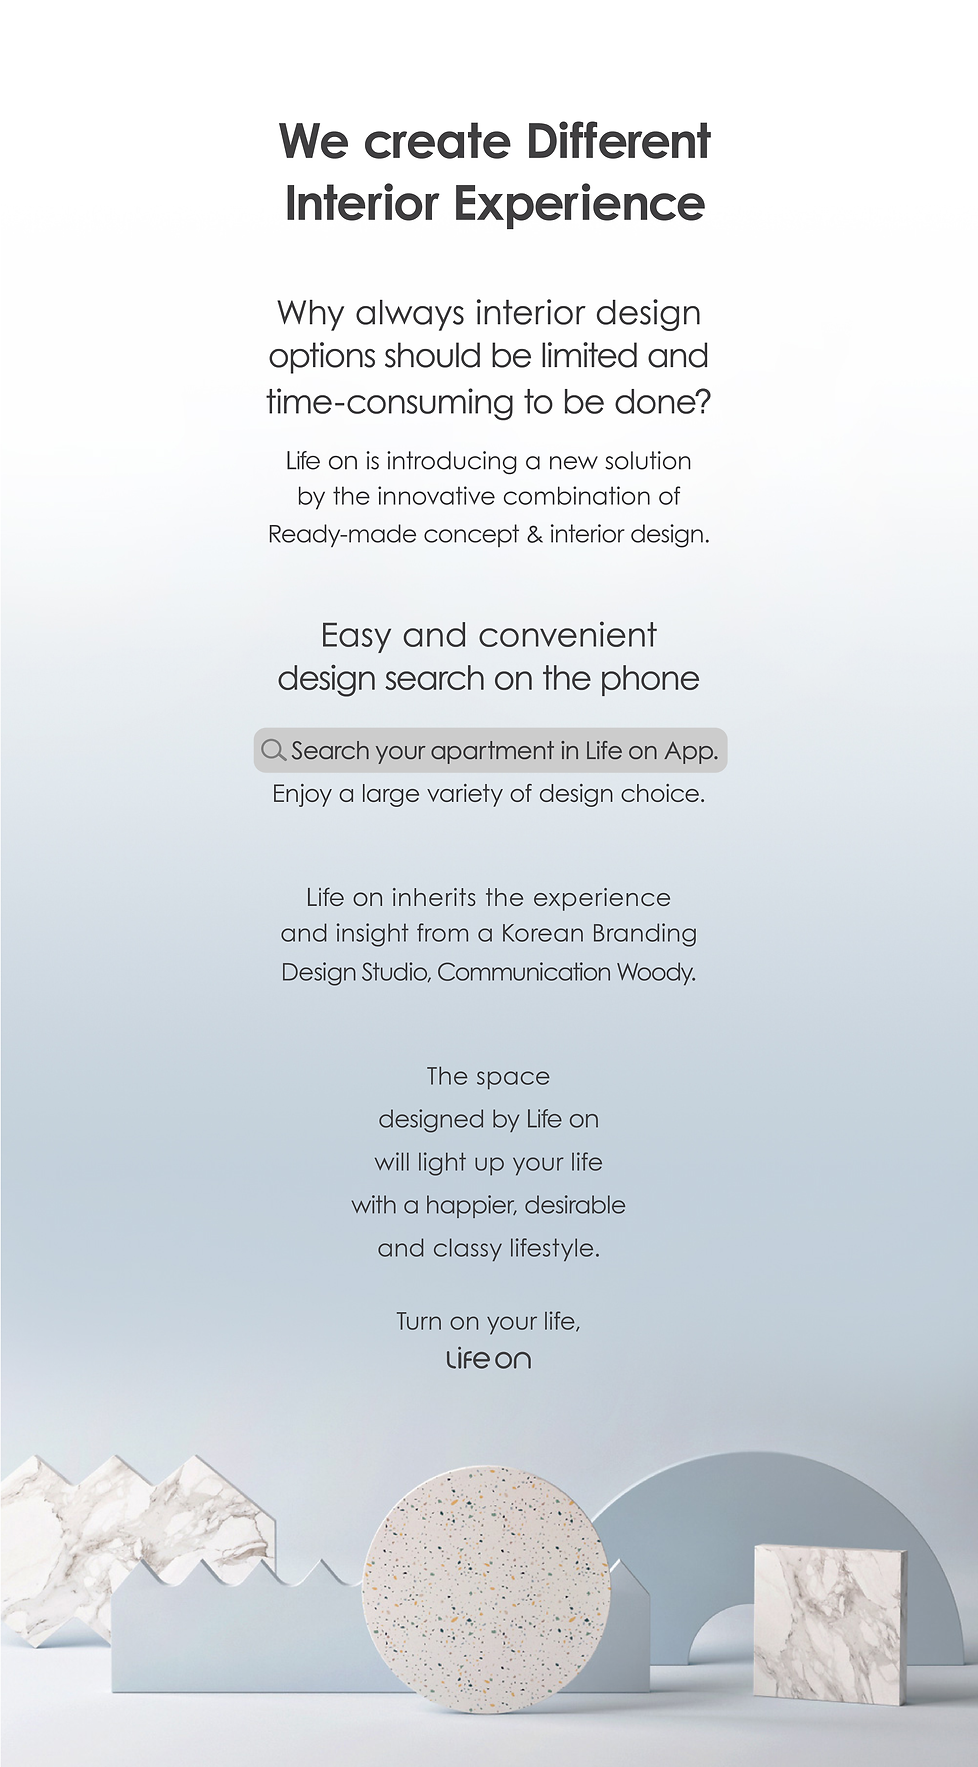 02_About Page_Ipad_ENG.png